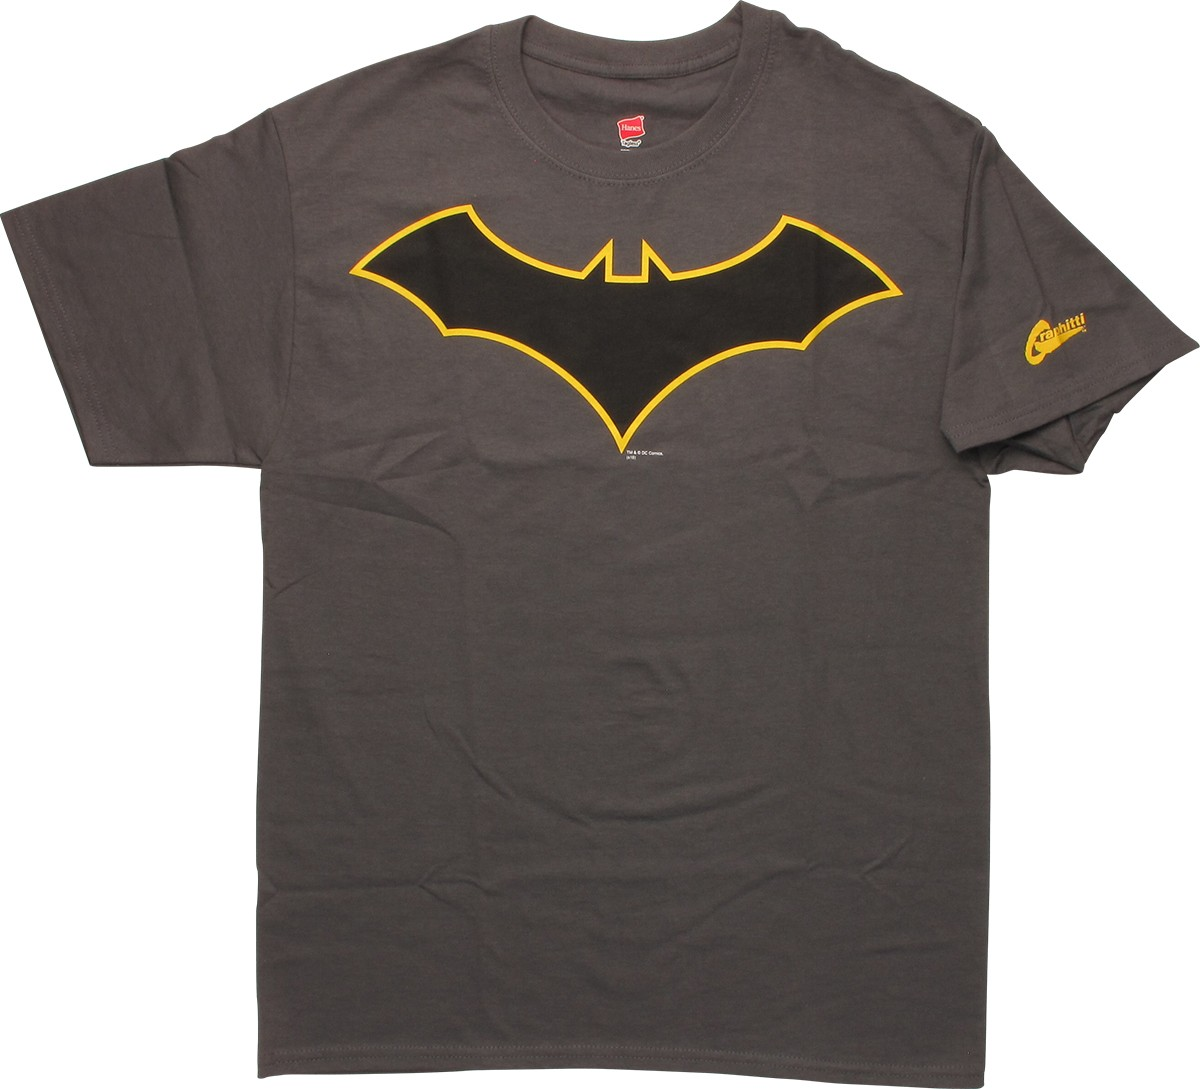 batman rebirth logo t shirt. Black Bedroom Furniture Sets. Home Design Ideas